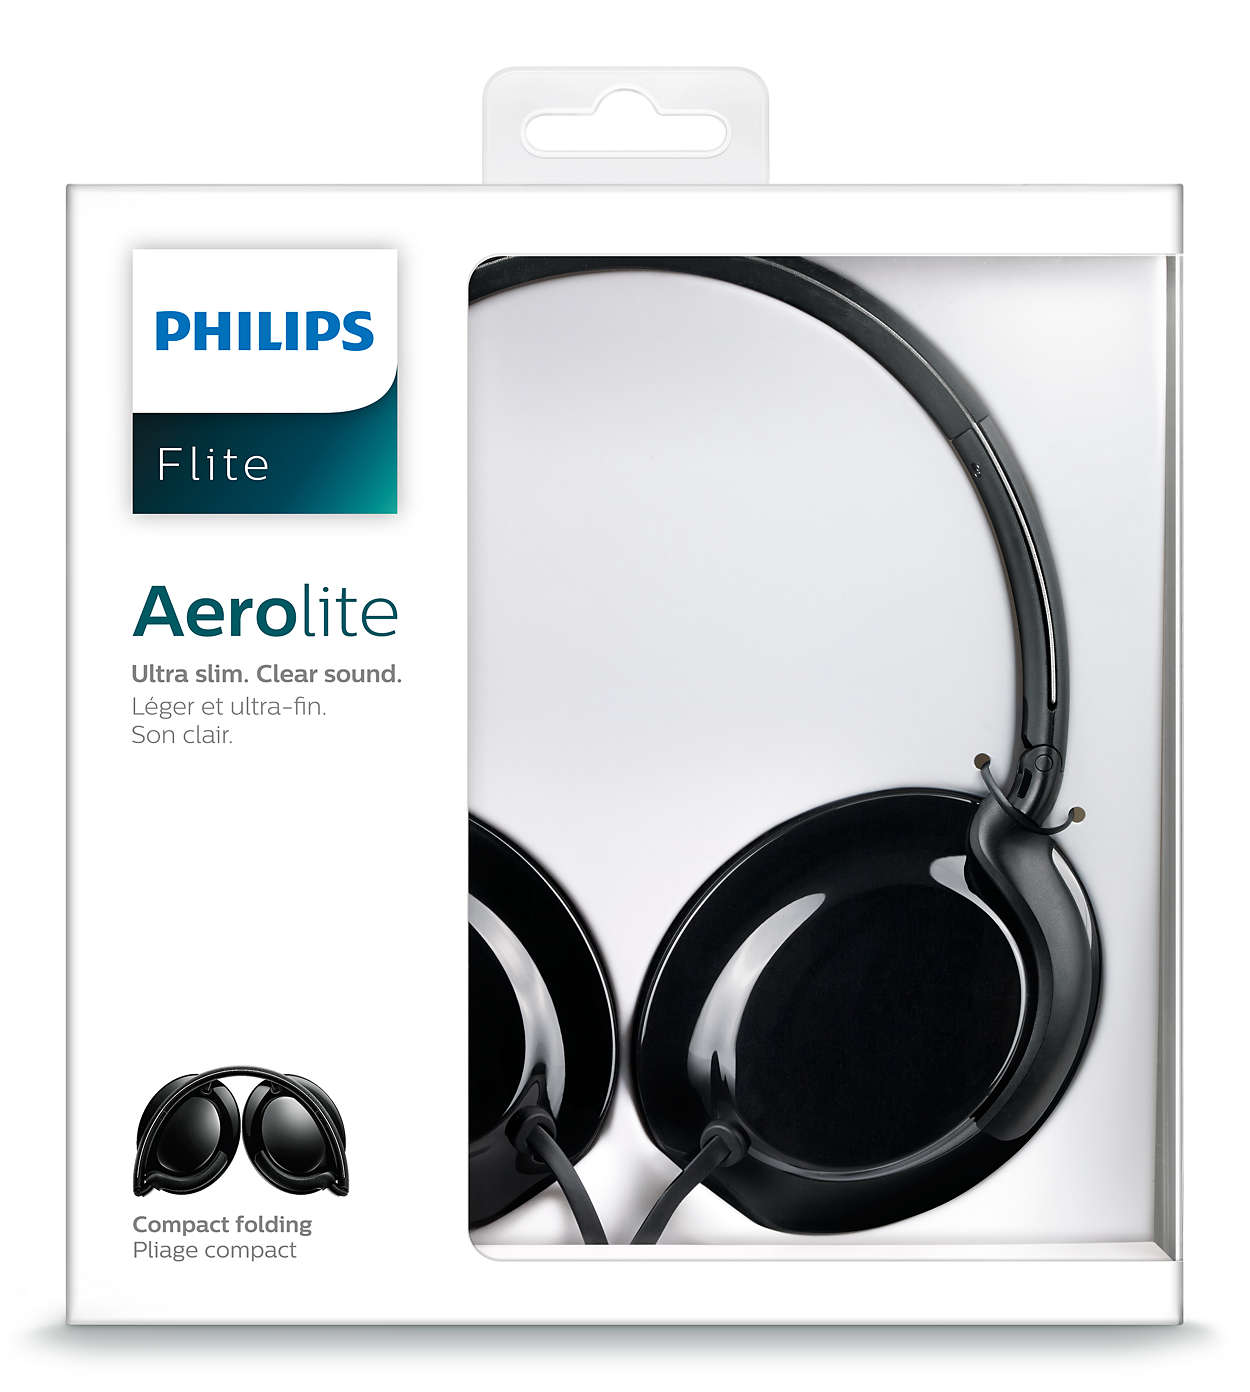 Flite Casque Shl4600bk00 Philips